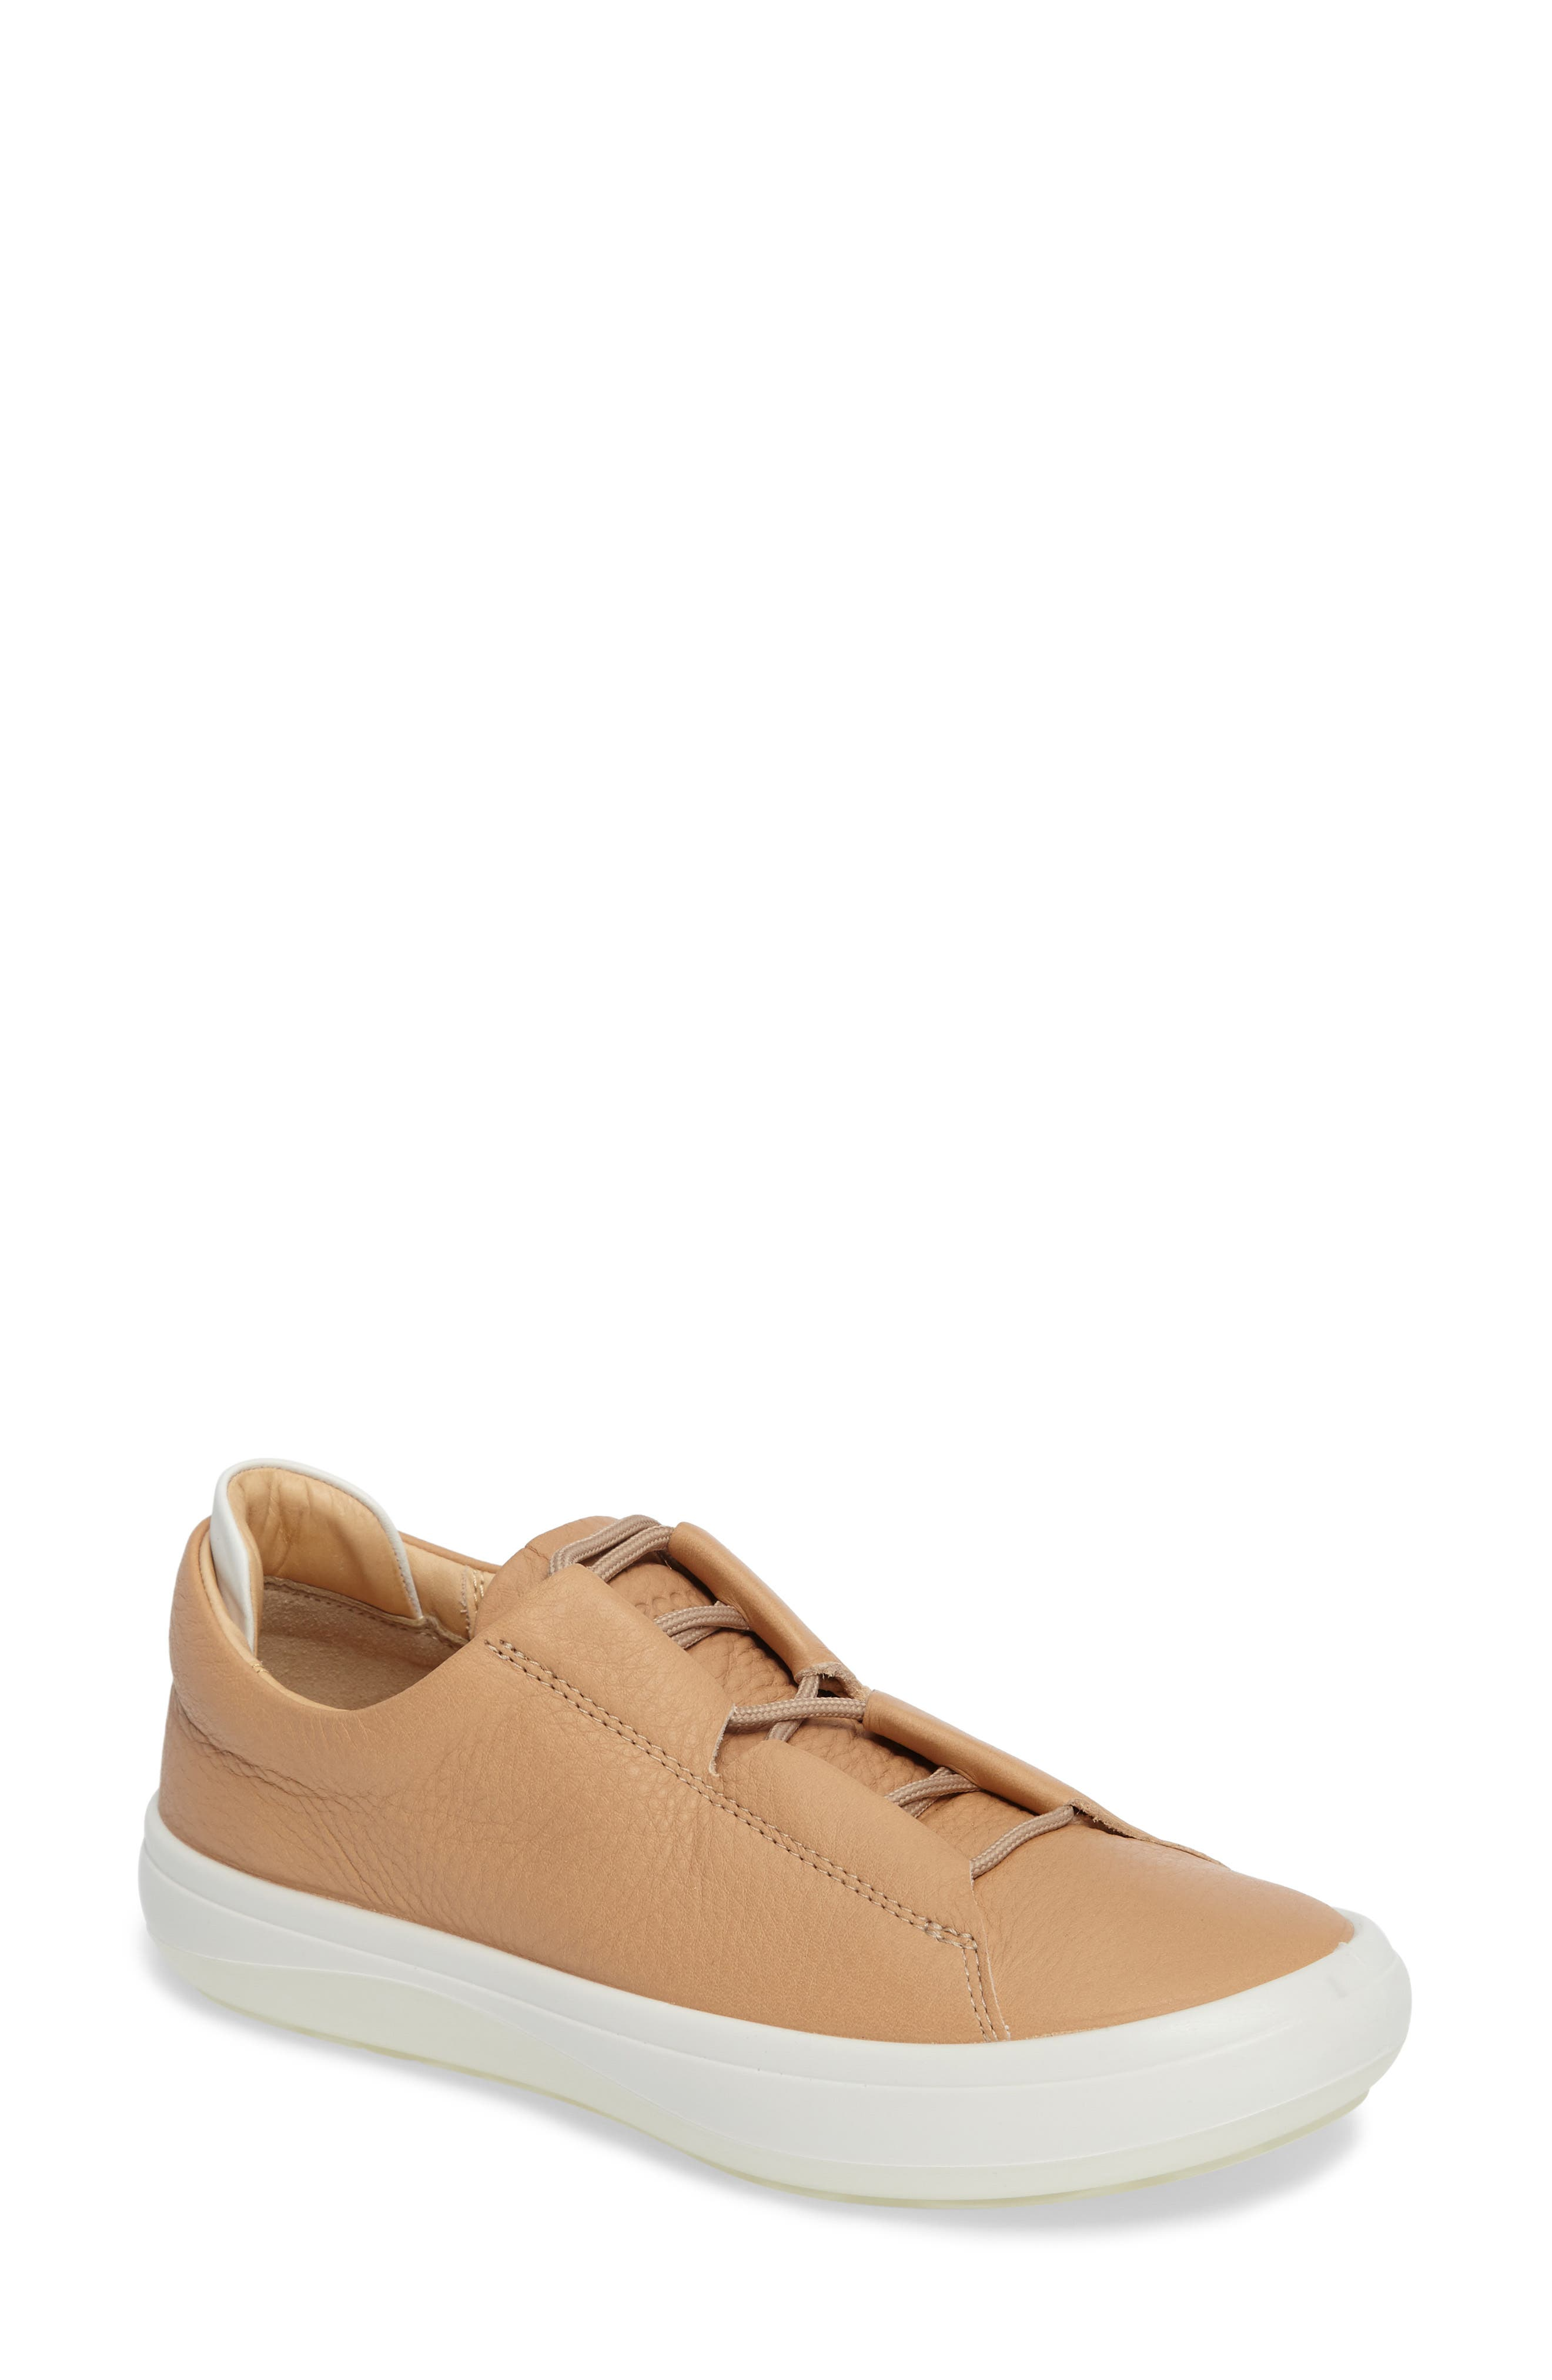 Kinhin Low Top Sneaker,                         Main,                         color, Volluto Leather